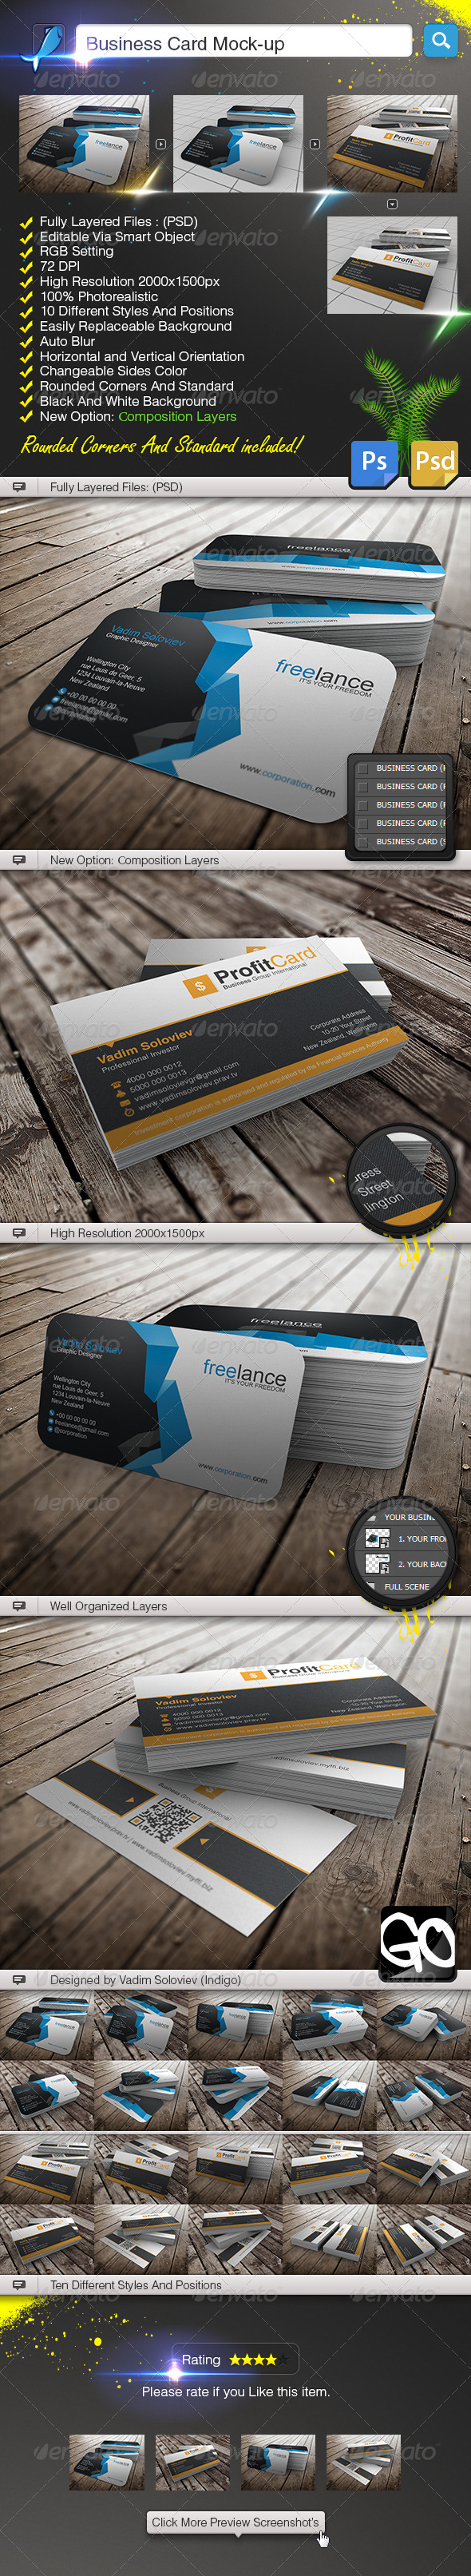 GraphicRiver Business Card Mock-Up 5307323